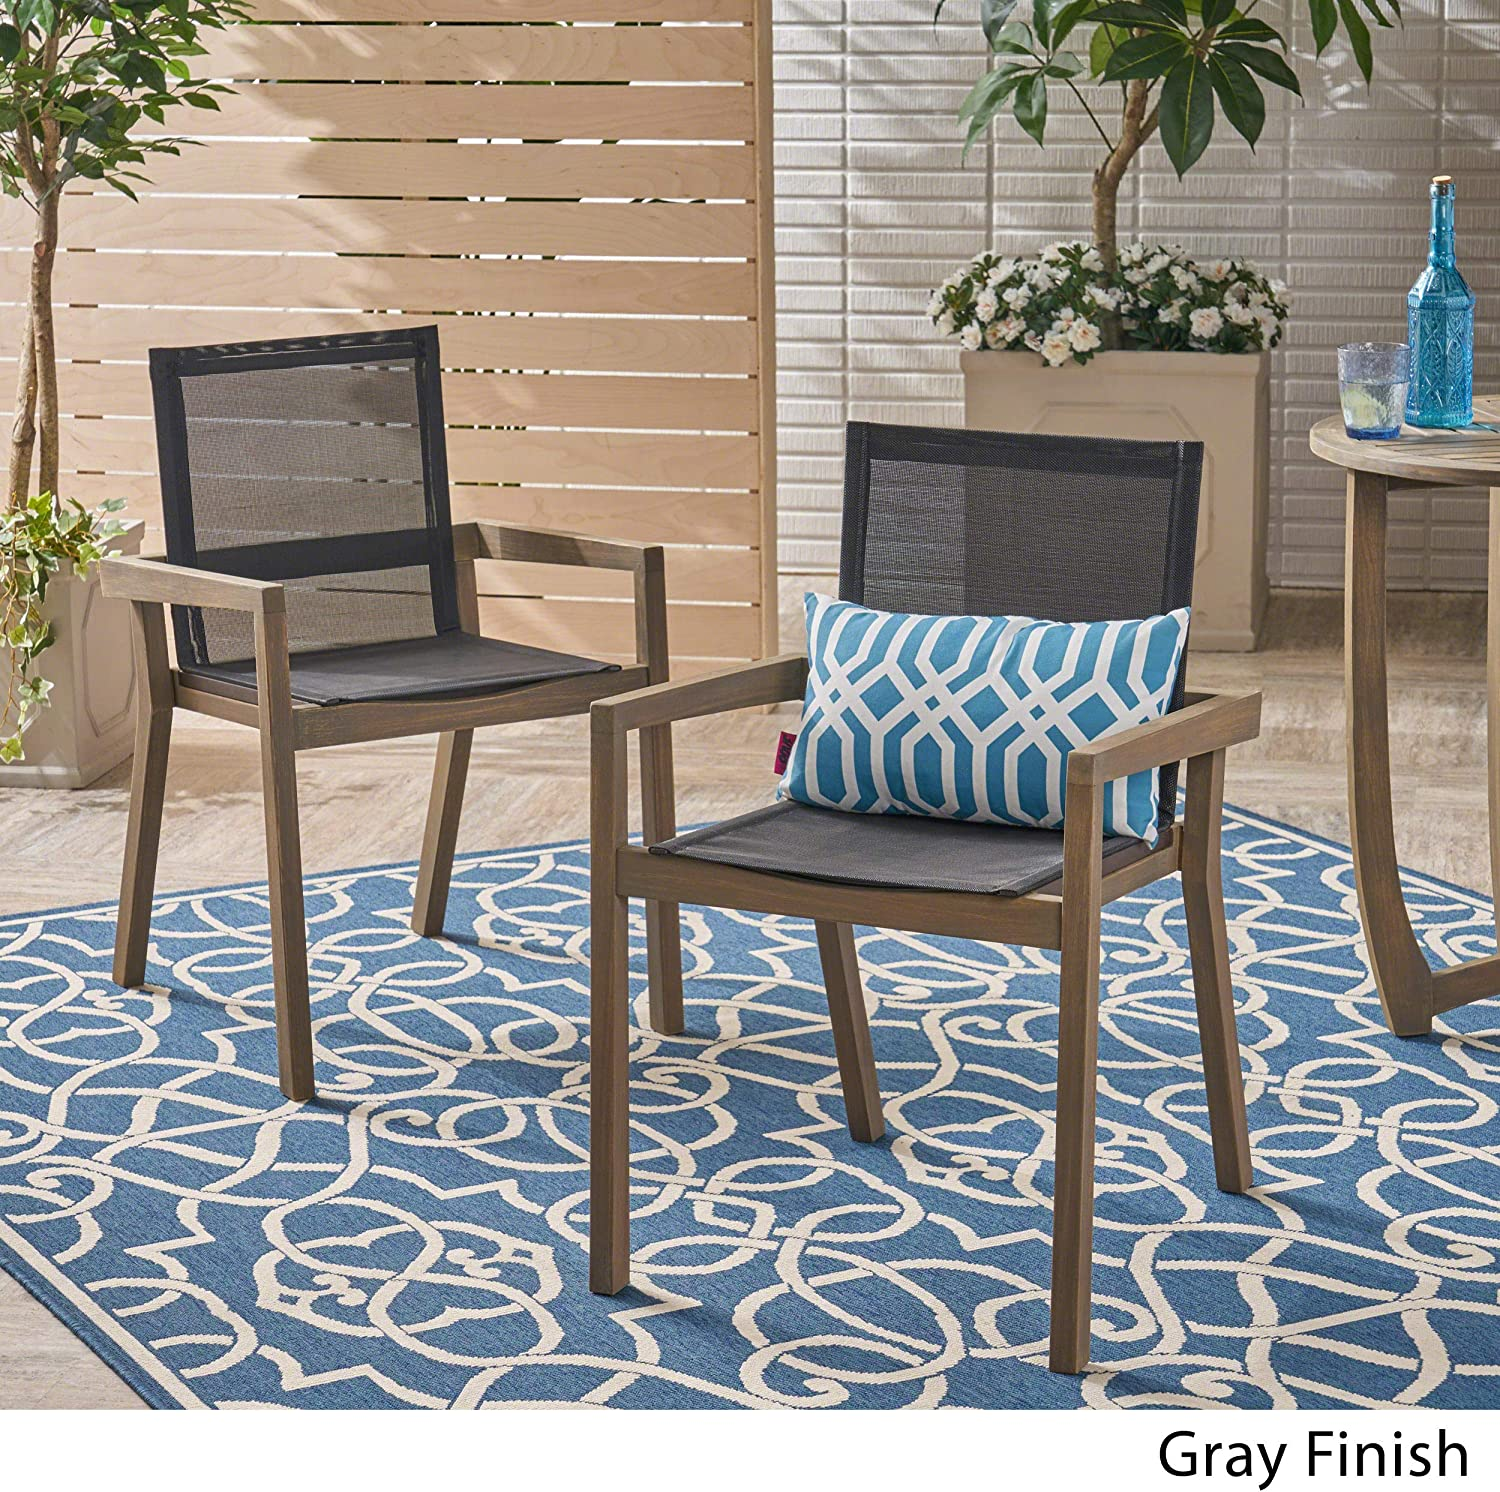 Christopher Knight Home 305156 Jimmy Outdoor Acacia Wood and Mesh Dining Chairs (Set of 2), Gray Finish : Garden & Outdoor